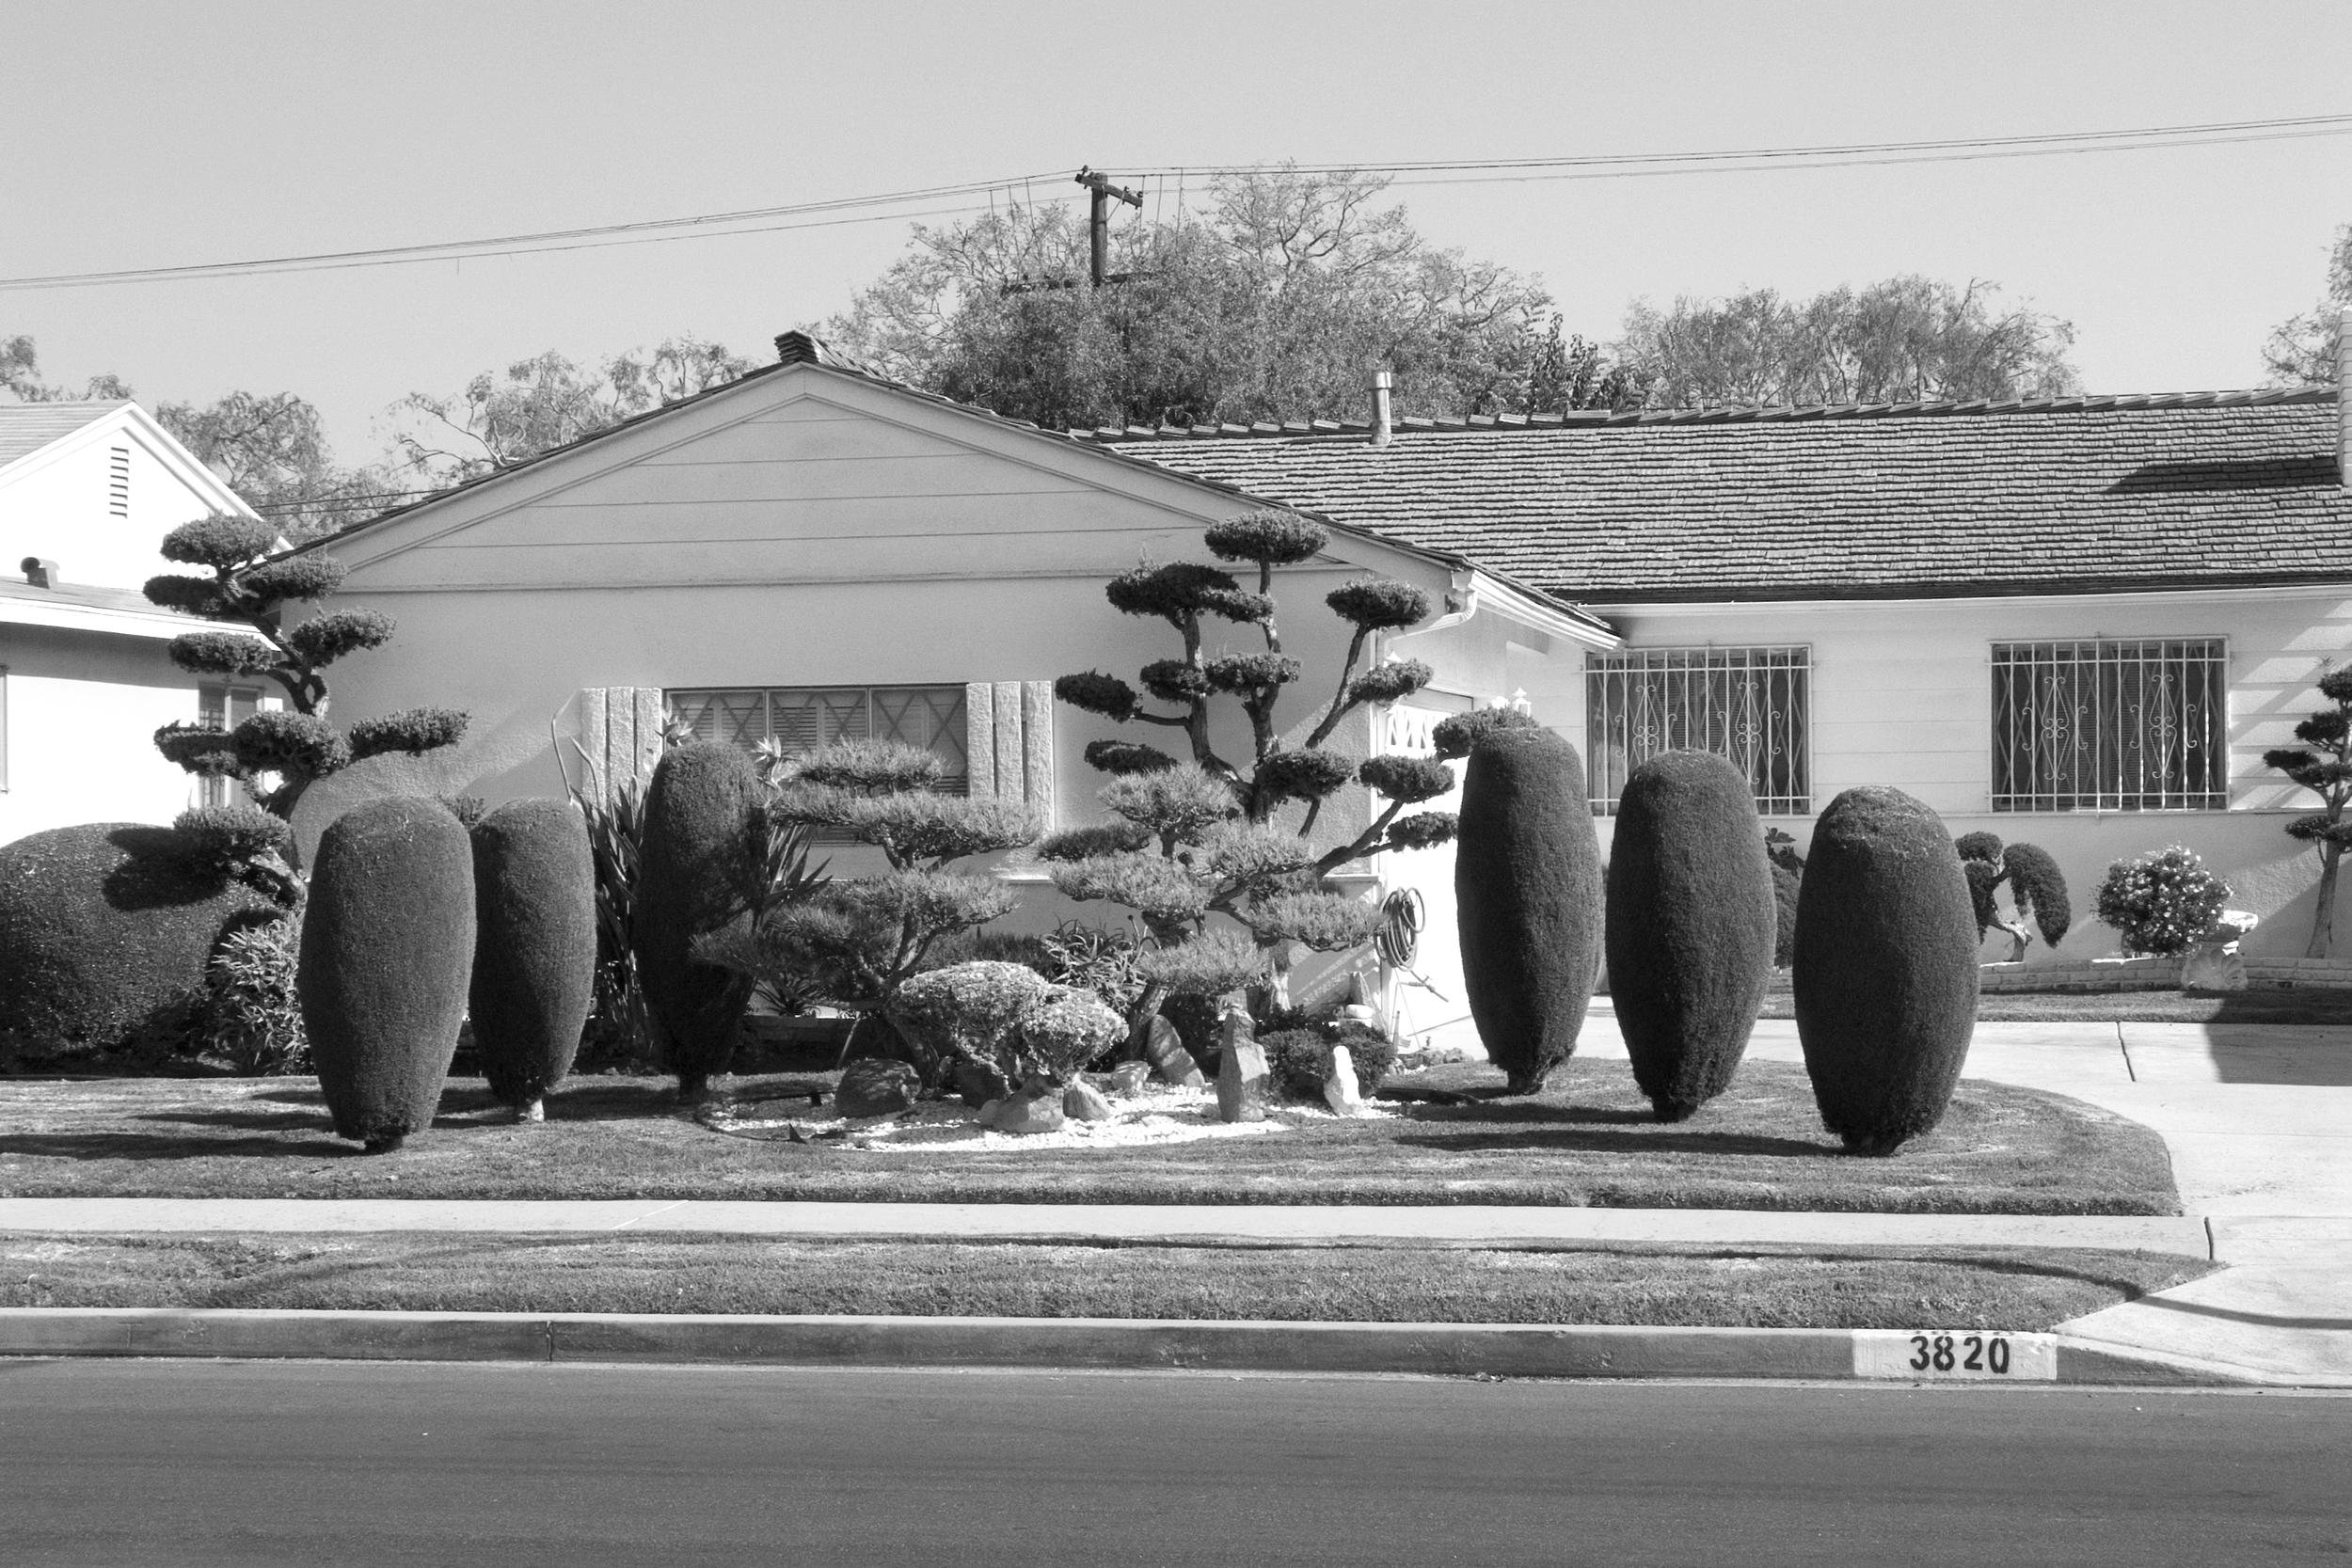 """Japanese-style landscaping in Crenshaw serves as a visible remnant of the area's past as a predominantly African American and Japanese American neighborhood.2006.                                0     false             18 pt     18 pt     0     0         false     false     false                                                     /* Style Definitions */ table.MsoNormalTable {mso-style-name:""""Table Normal""""; mso-tstyle-rowband-size:0; mso-tstyle-colband-size:0; mso-style-noshow:yes; mso-style-parent:""""""""; mso-padding-alt:0in 5.4pt 0in 5.4pt; mso-para-margin:0in; mso-para-margin-bottom:.0001pt; mso-pagination:widow-orphan; font-size:10.0pt; font-family:""""Times New Roman"""";}"""